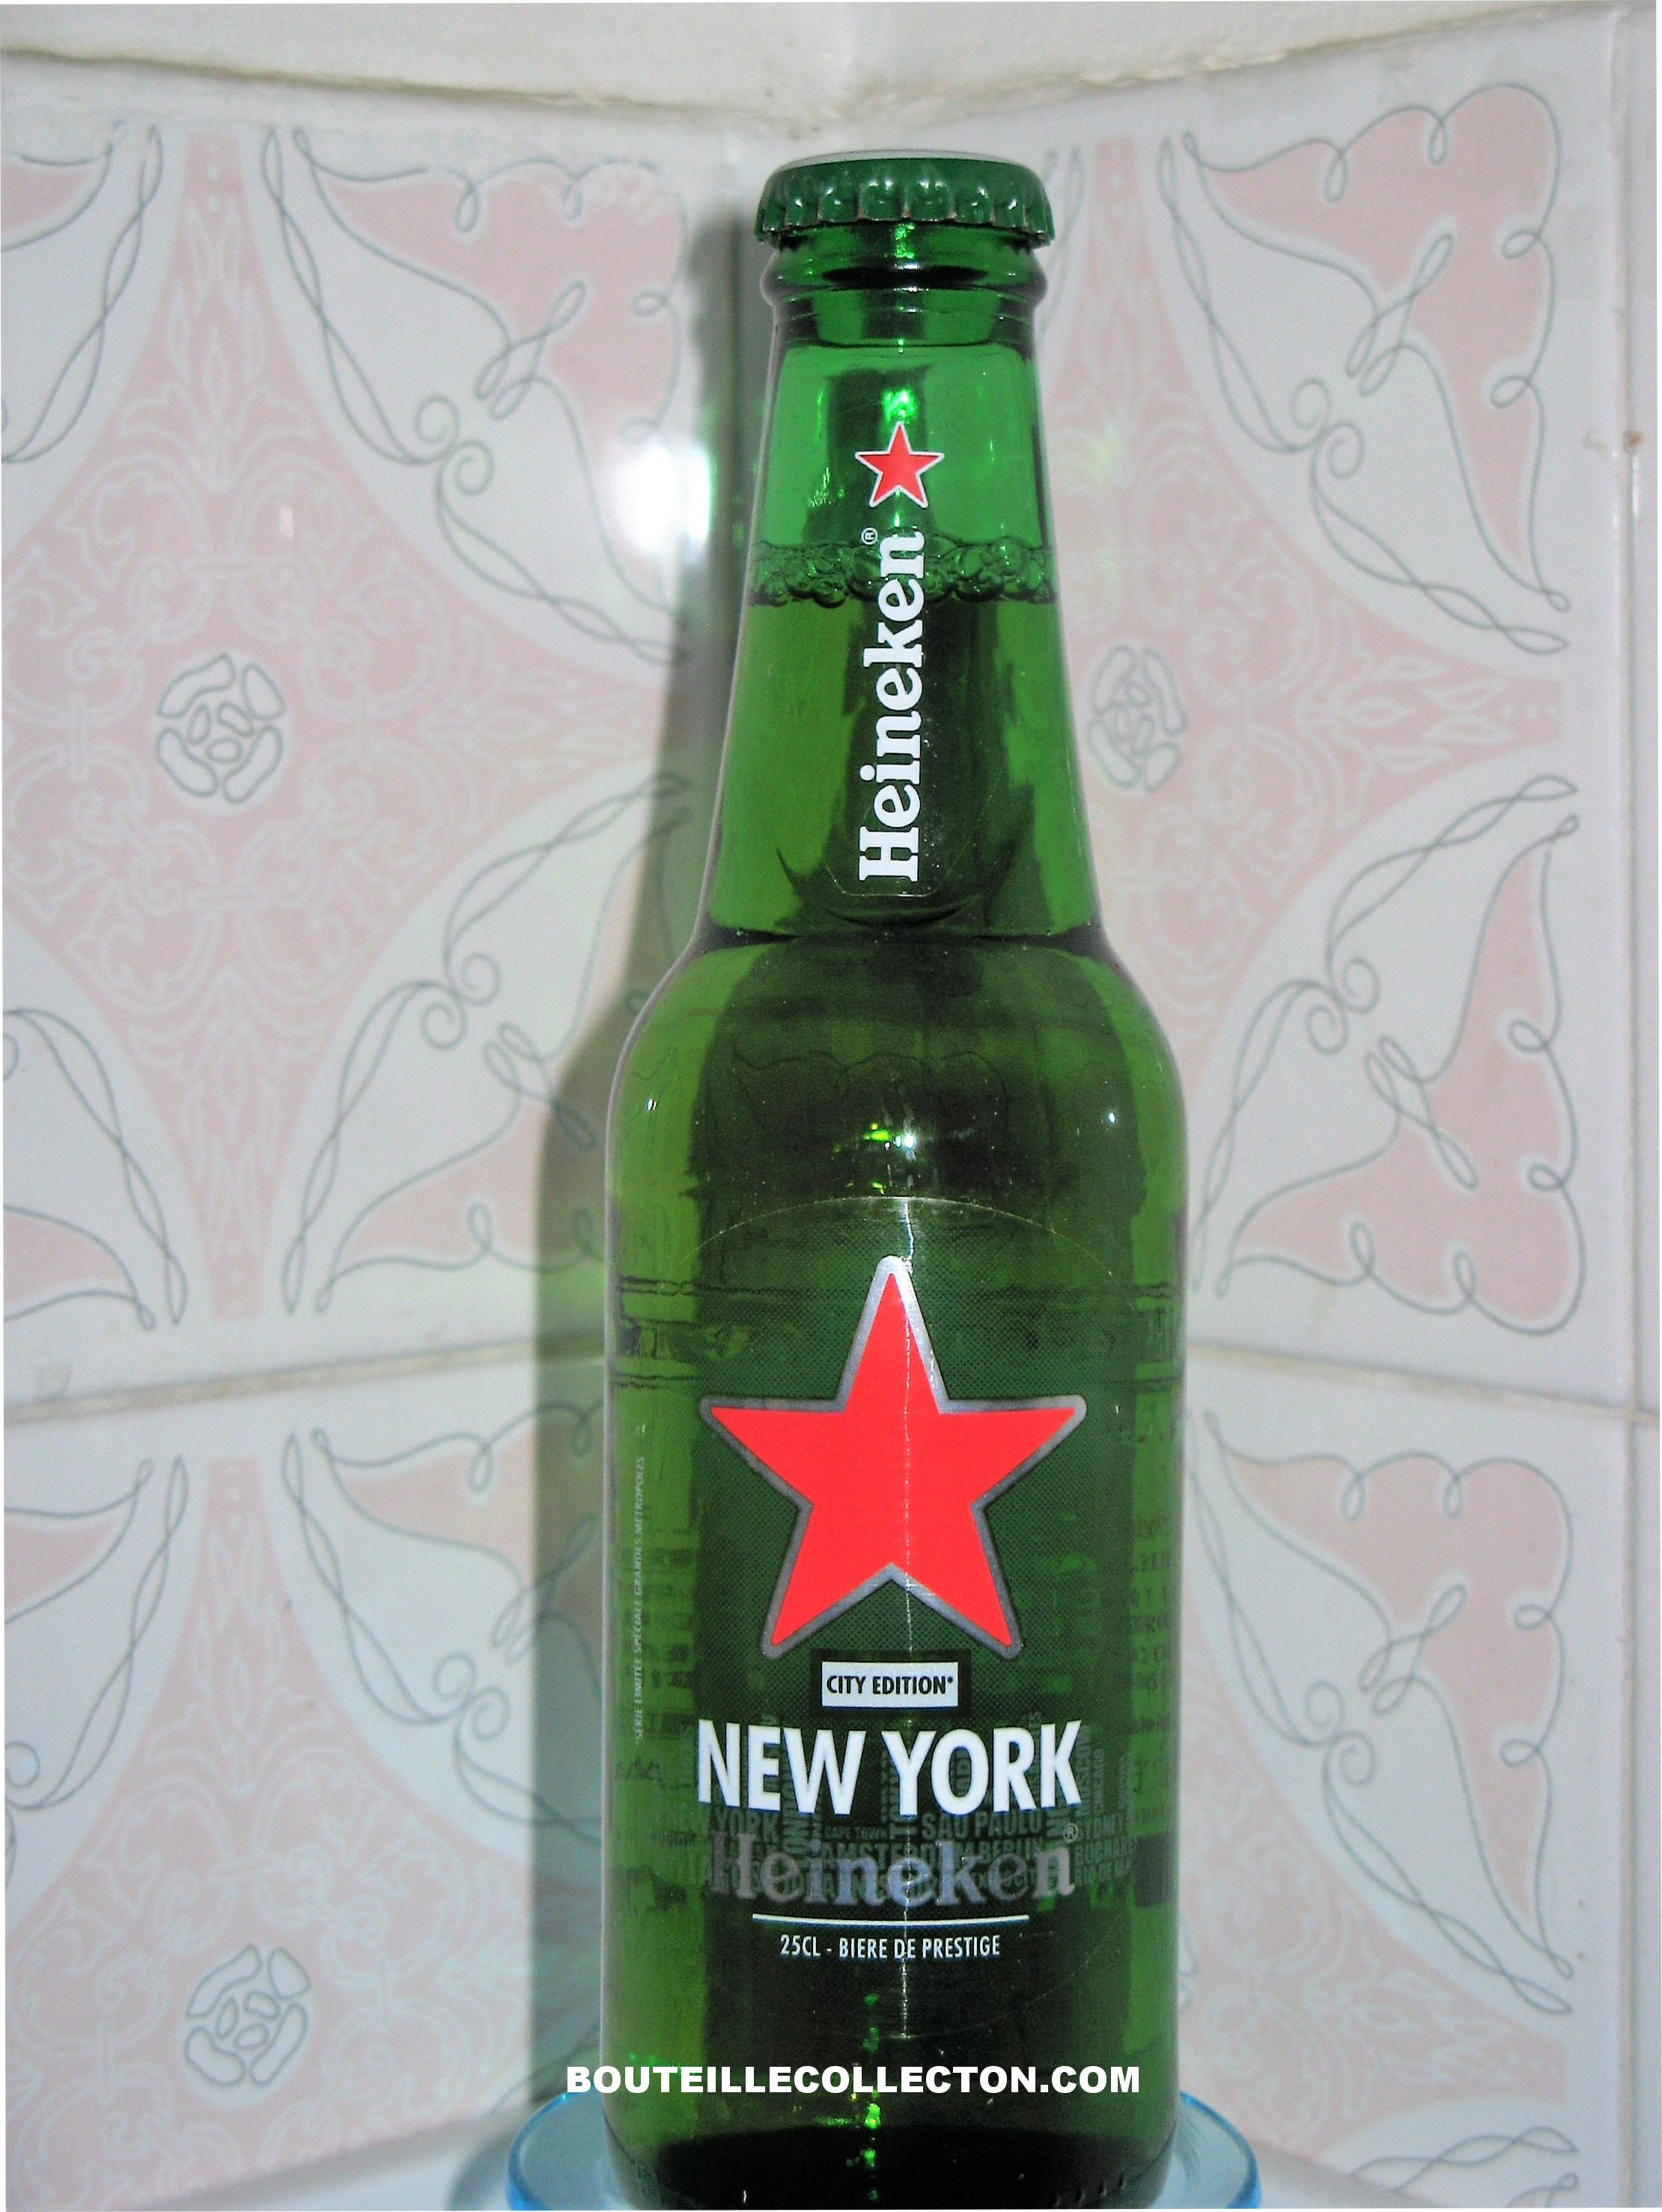 AC HEINEKEN CITY EDITION NEW YORD 2014 25CL B.jpg